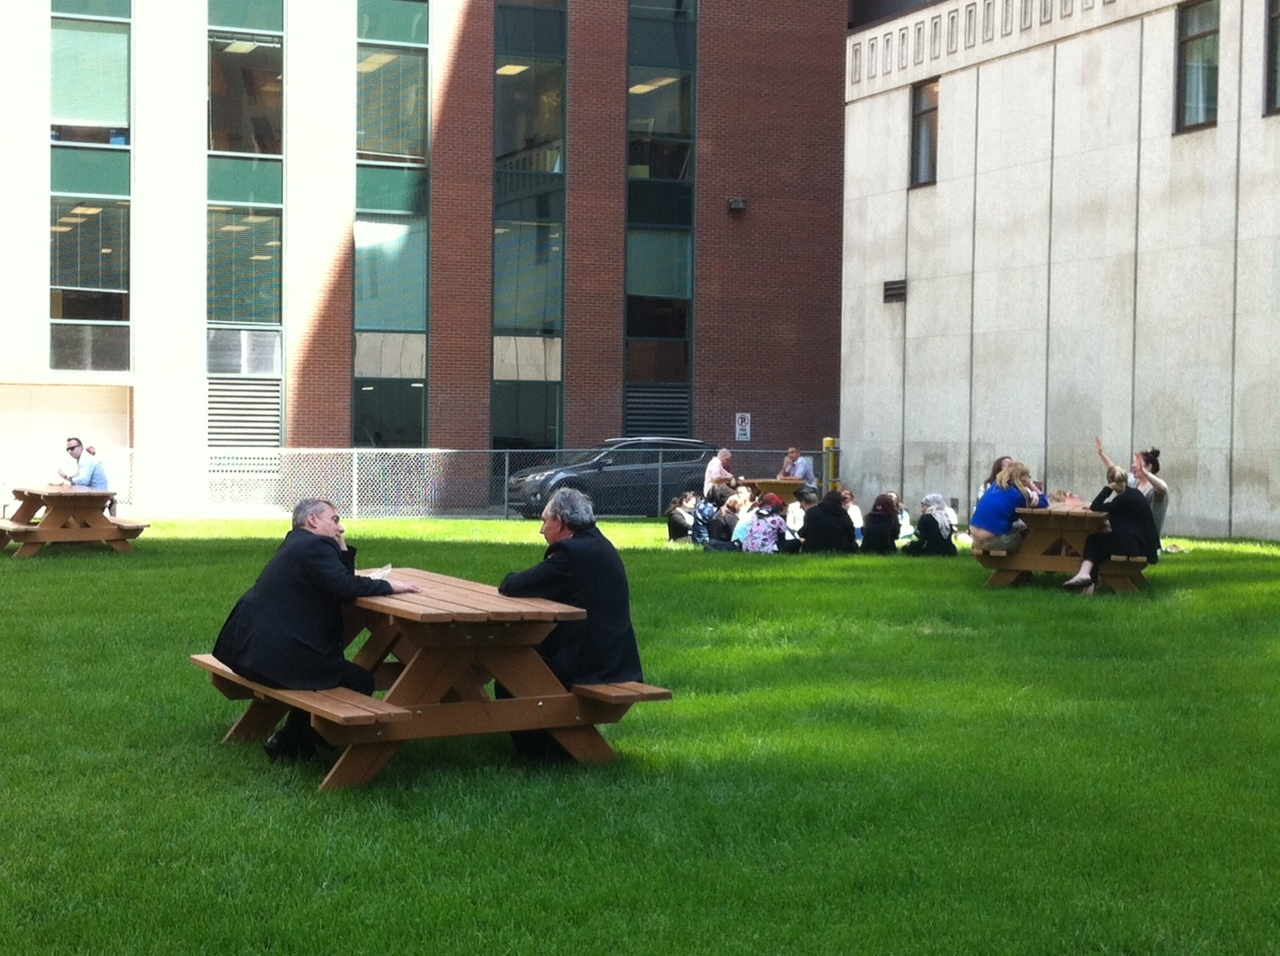 This could be the most minimalist downtown park in Canada - no name, no trees, no decorations, just green grass and four picnic tables randomly spaced.